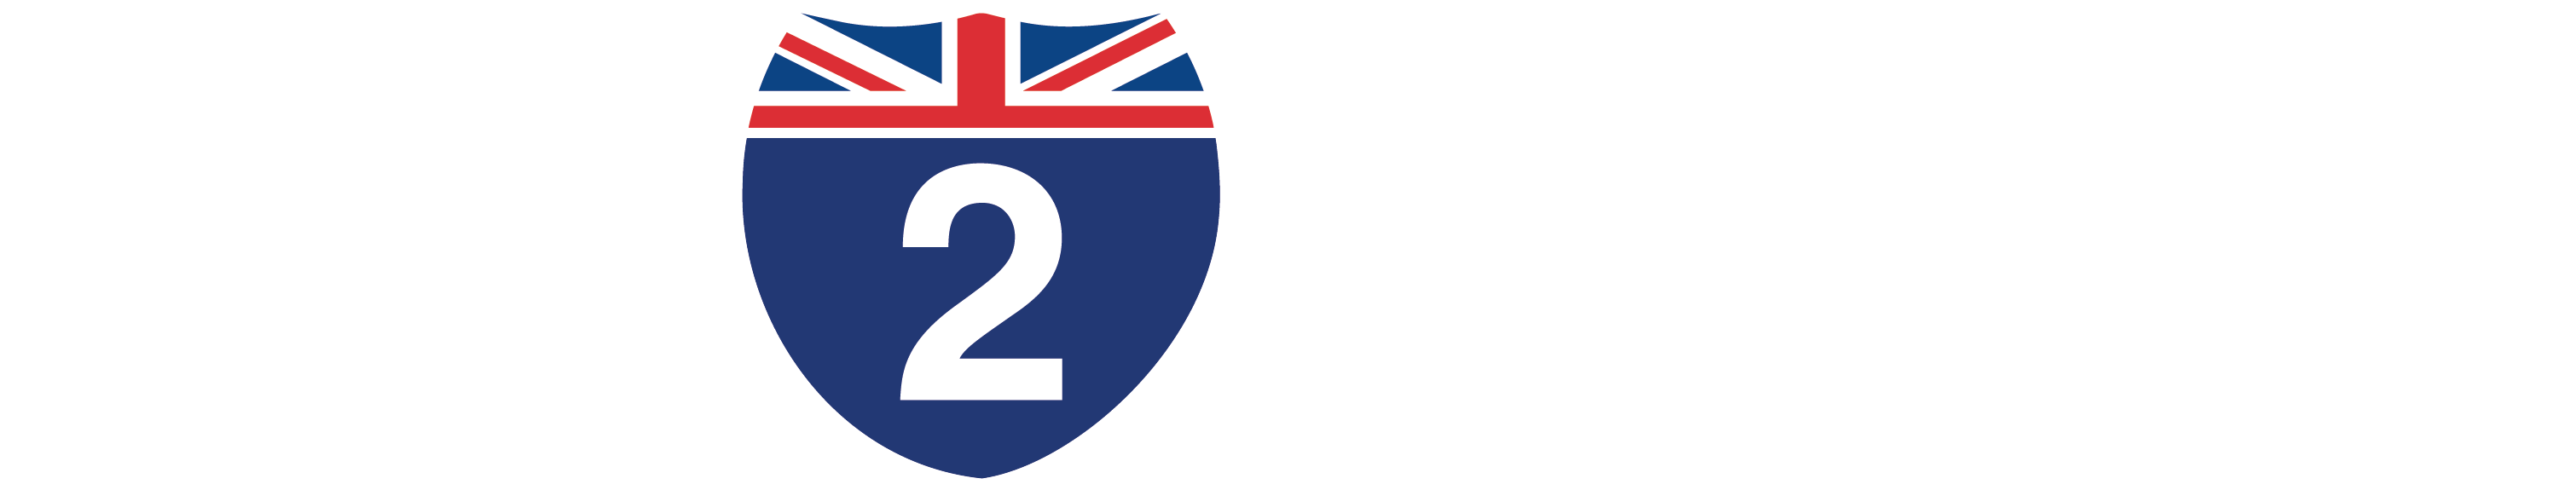 Road 2 Recovery UK